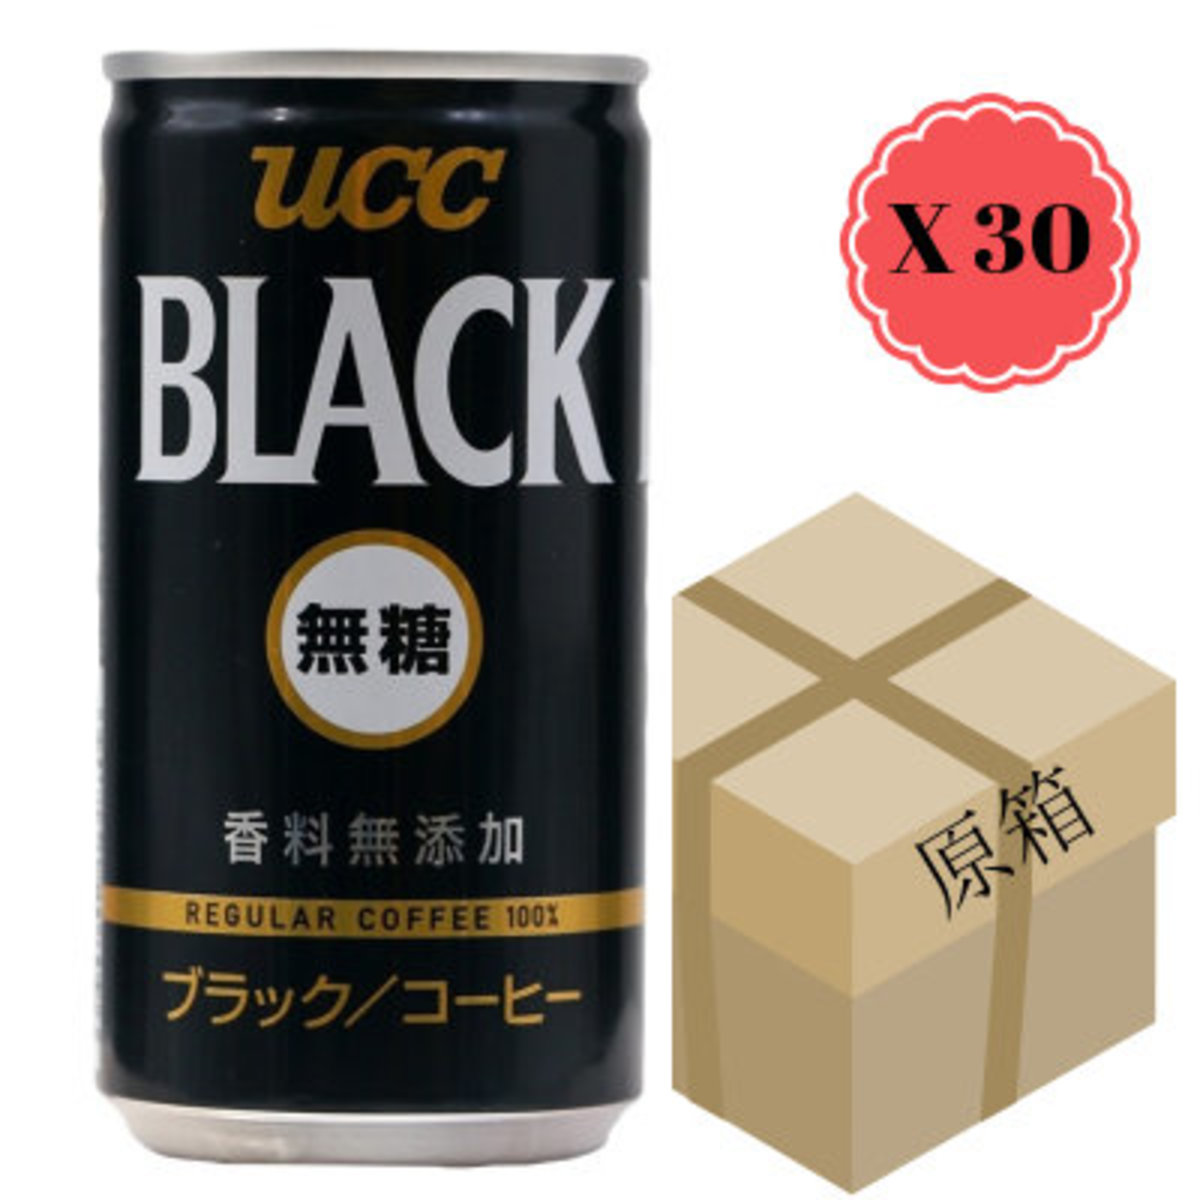 [Full Case] Sugar Free Black Coffee 185g x 30 (4901201208096)